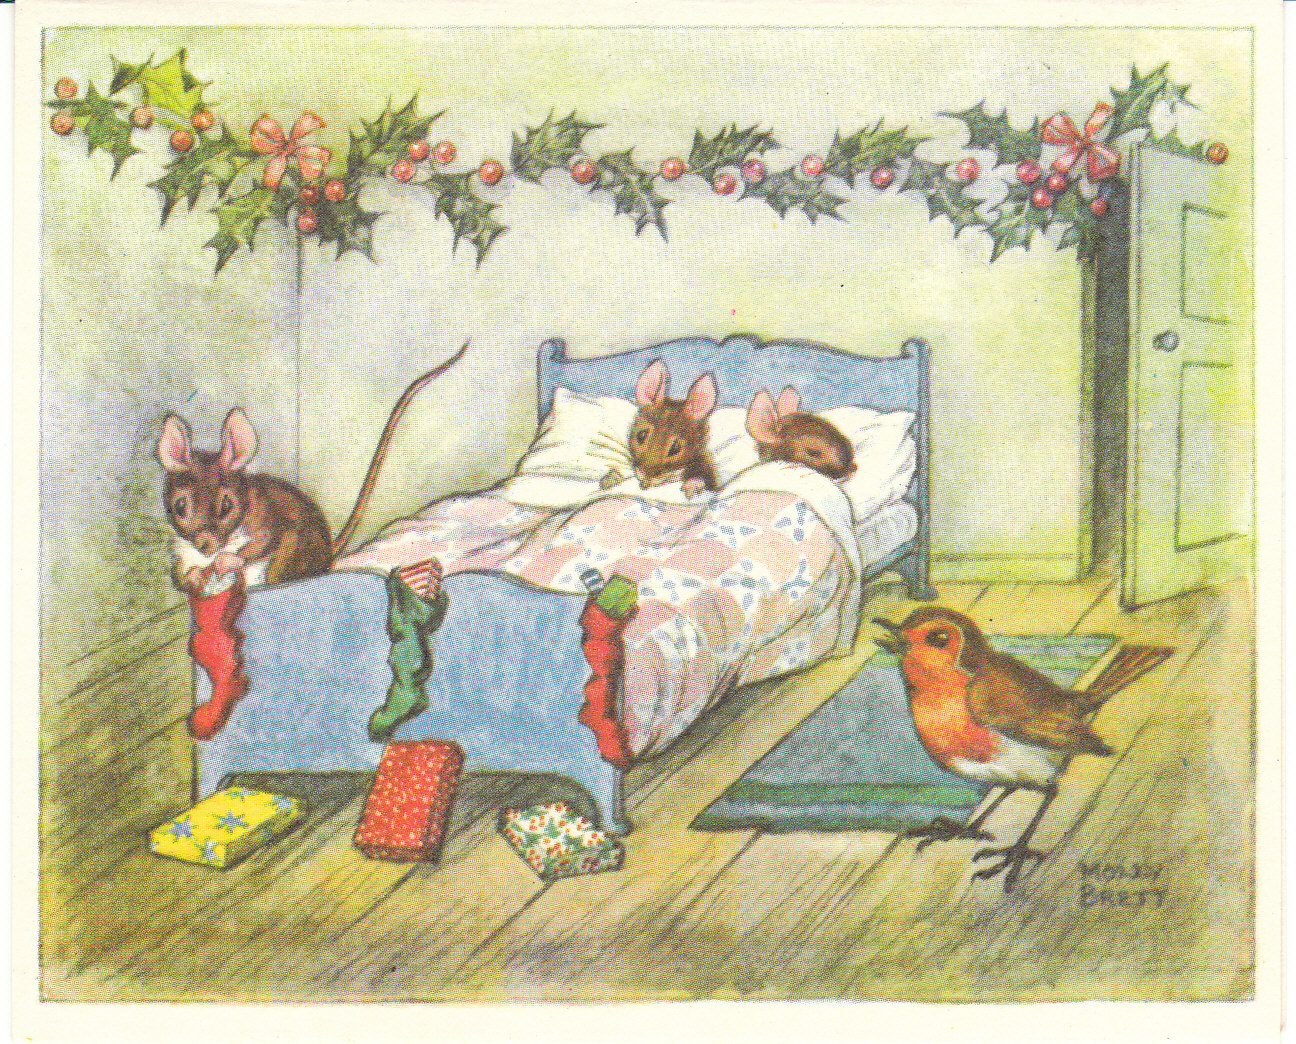 View from the Birdhouse: Never Discard a Vintage Christmas Card!